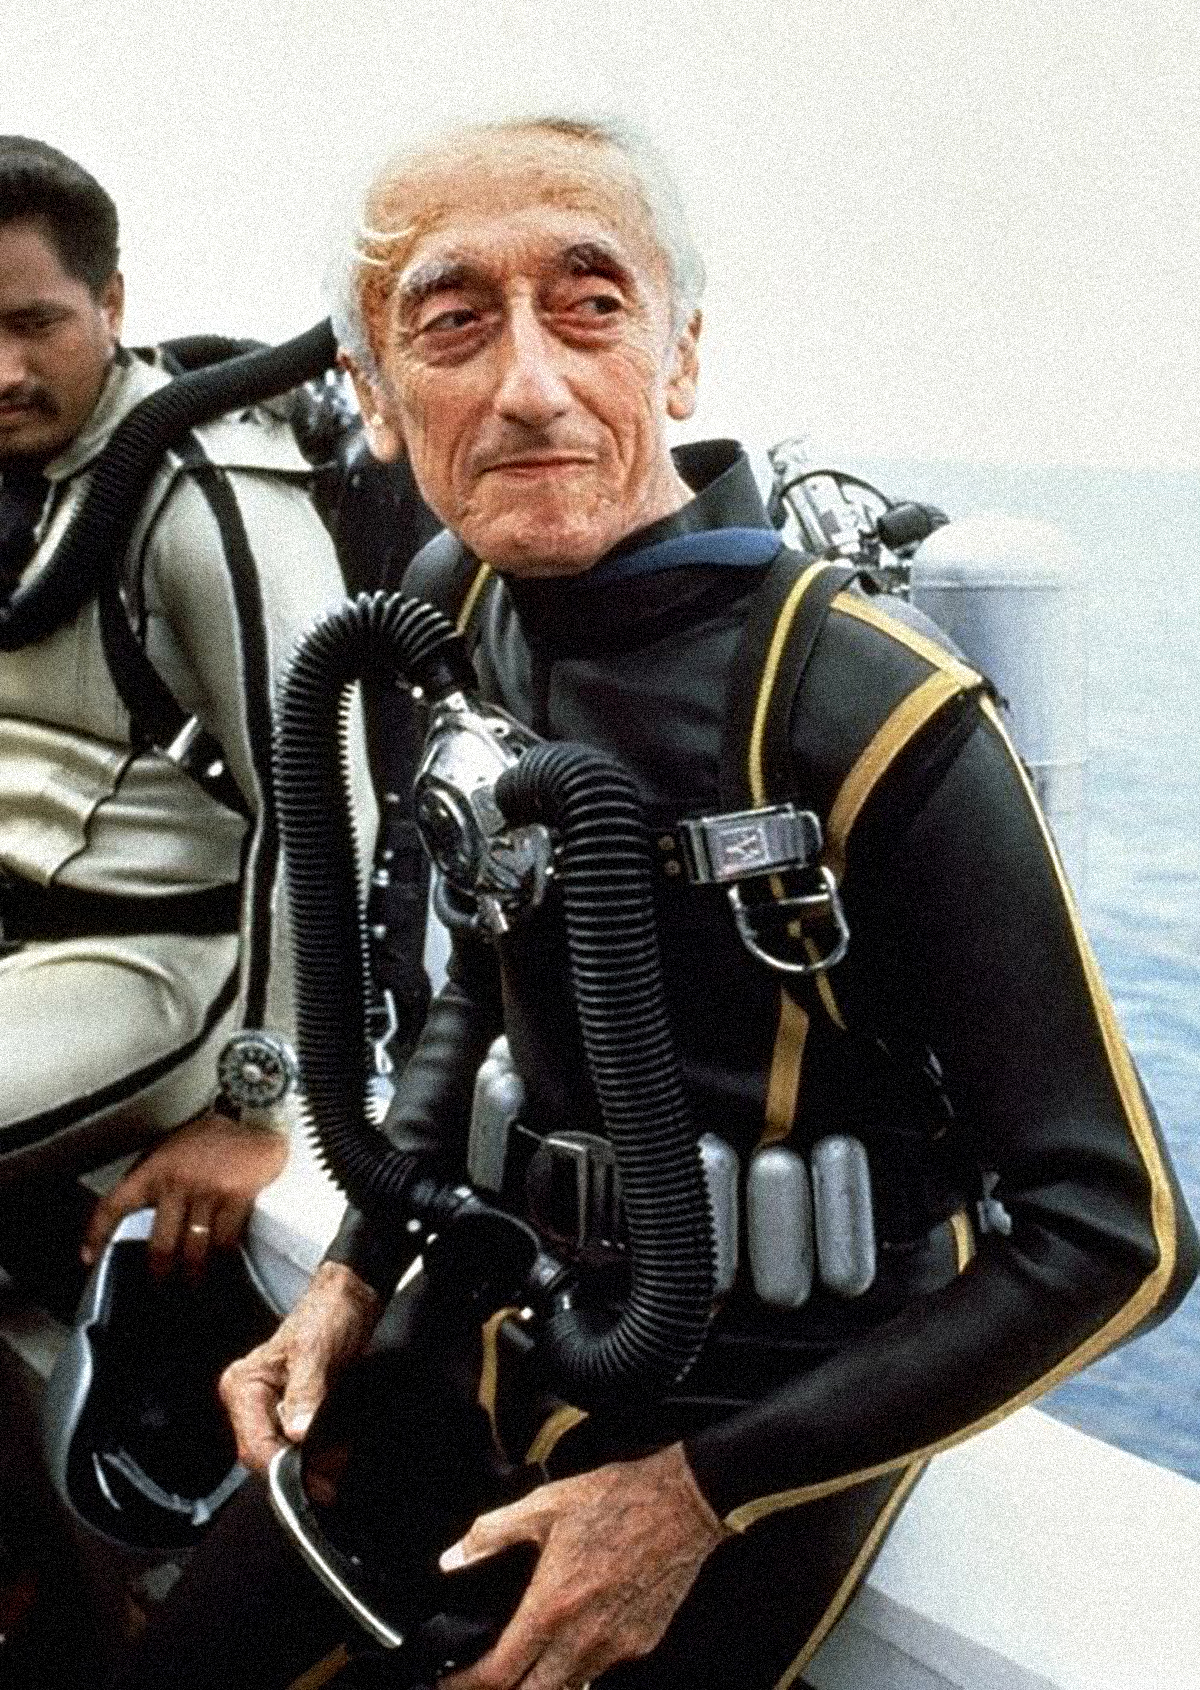 Jaques Costeau dressed up in diving equipment